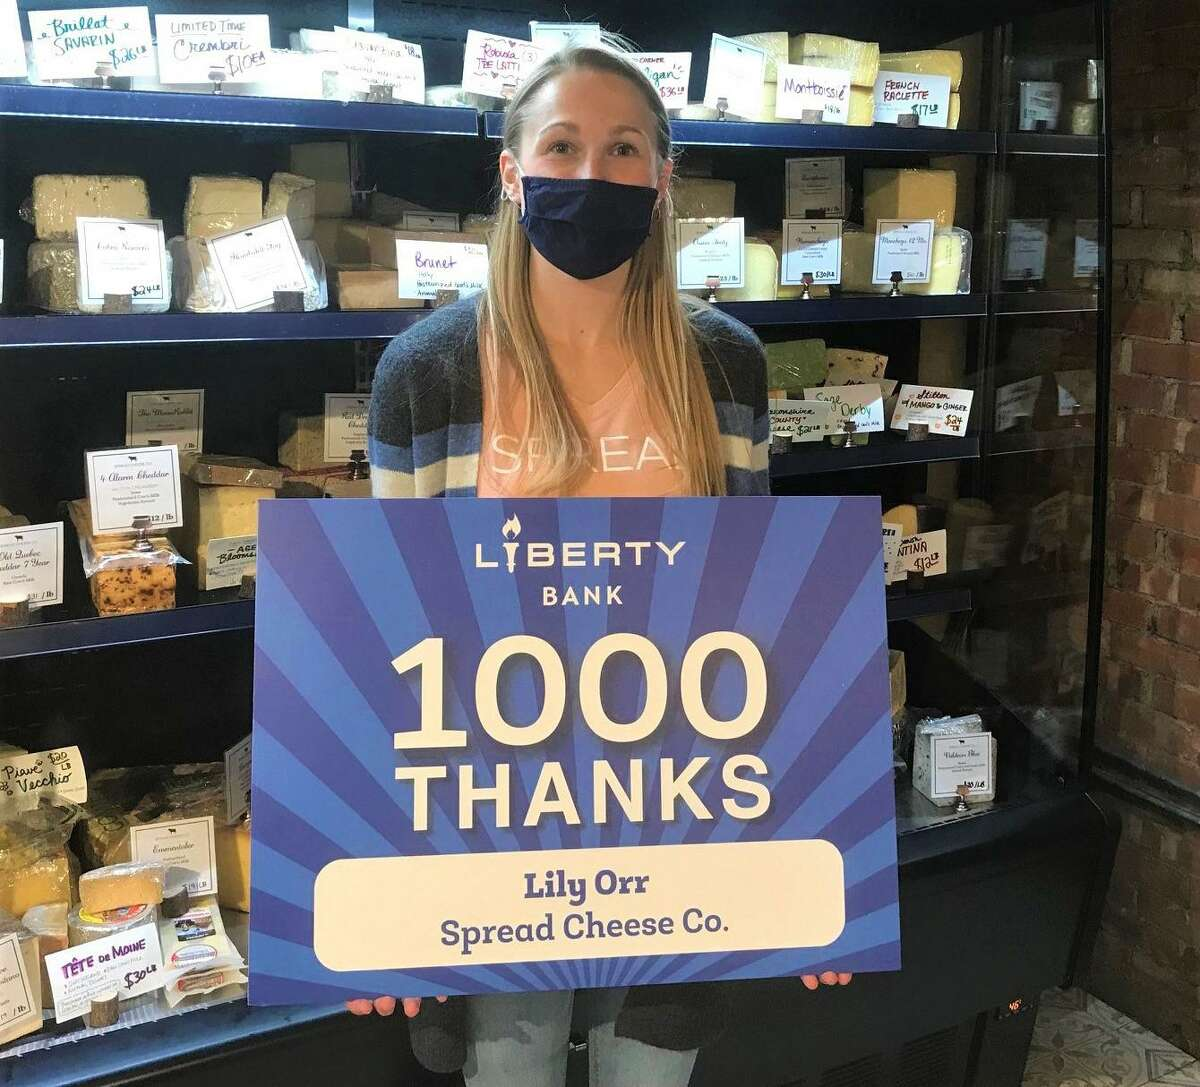 Middletown-based Liberty Bank's 1,000 Thanks Campaign recognizes small business partners and teammates who help them succeed. Lily Orr, of Spread Cheese Co., at Middletown's Main Street Market, was among those honored.